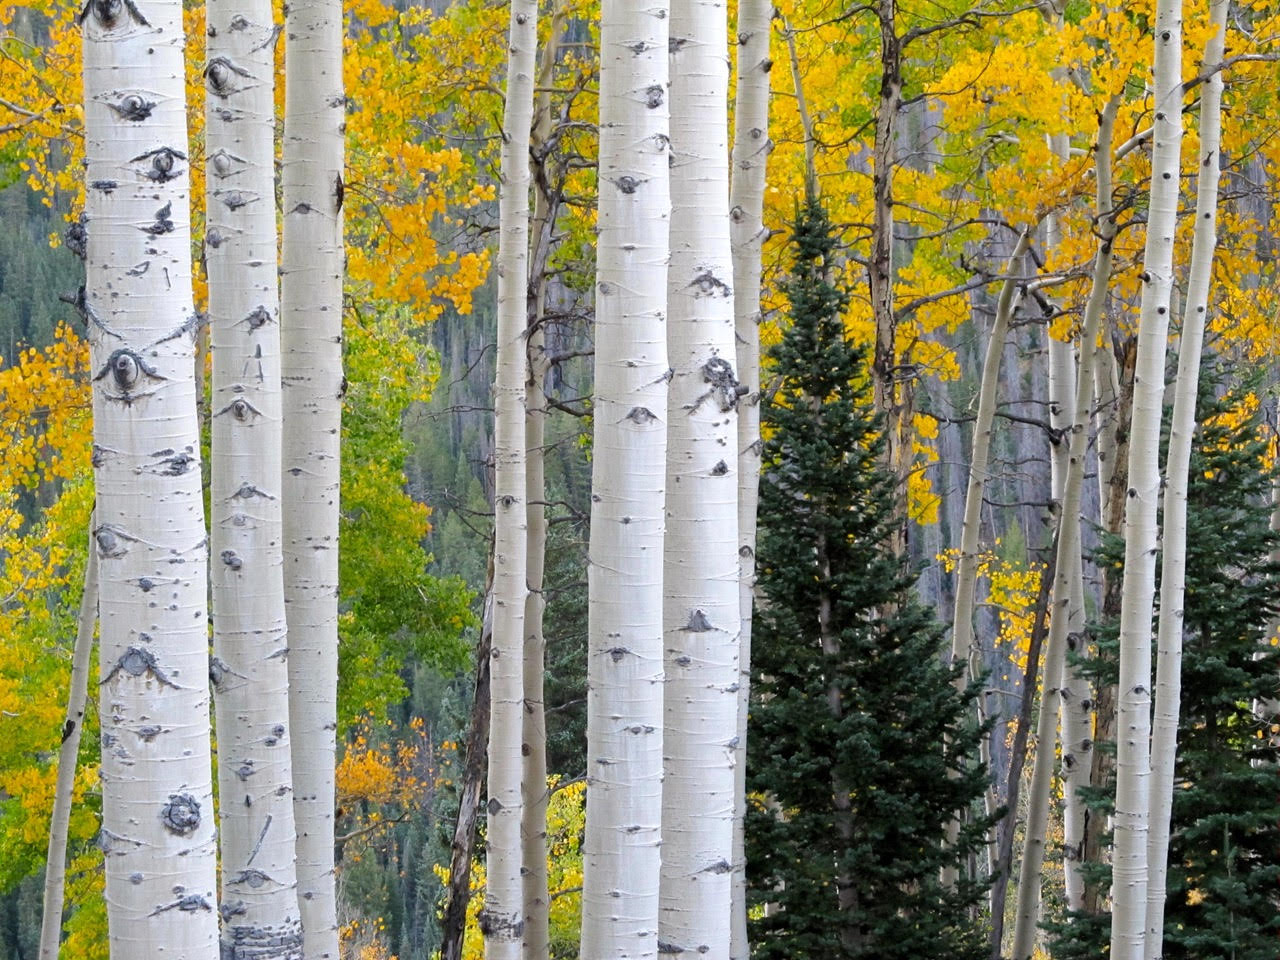 Aspens changing colors.